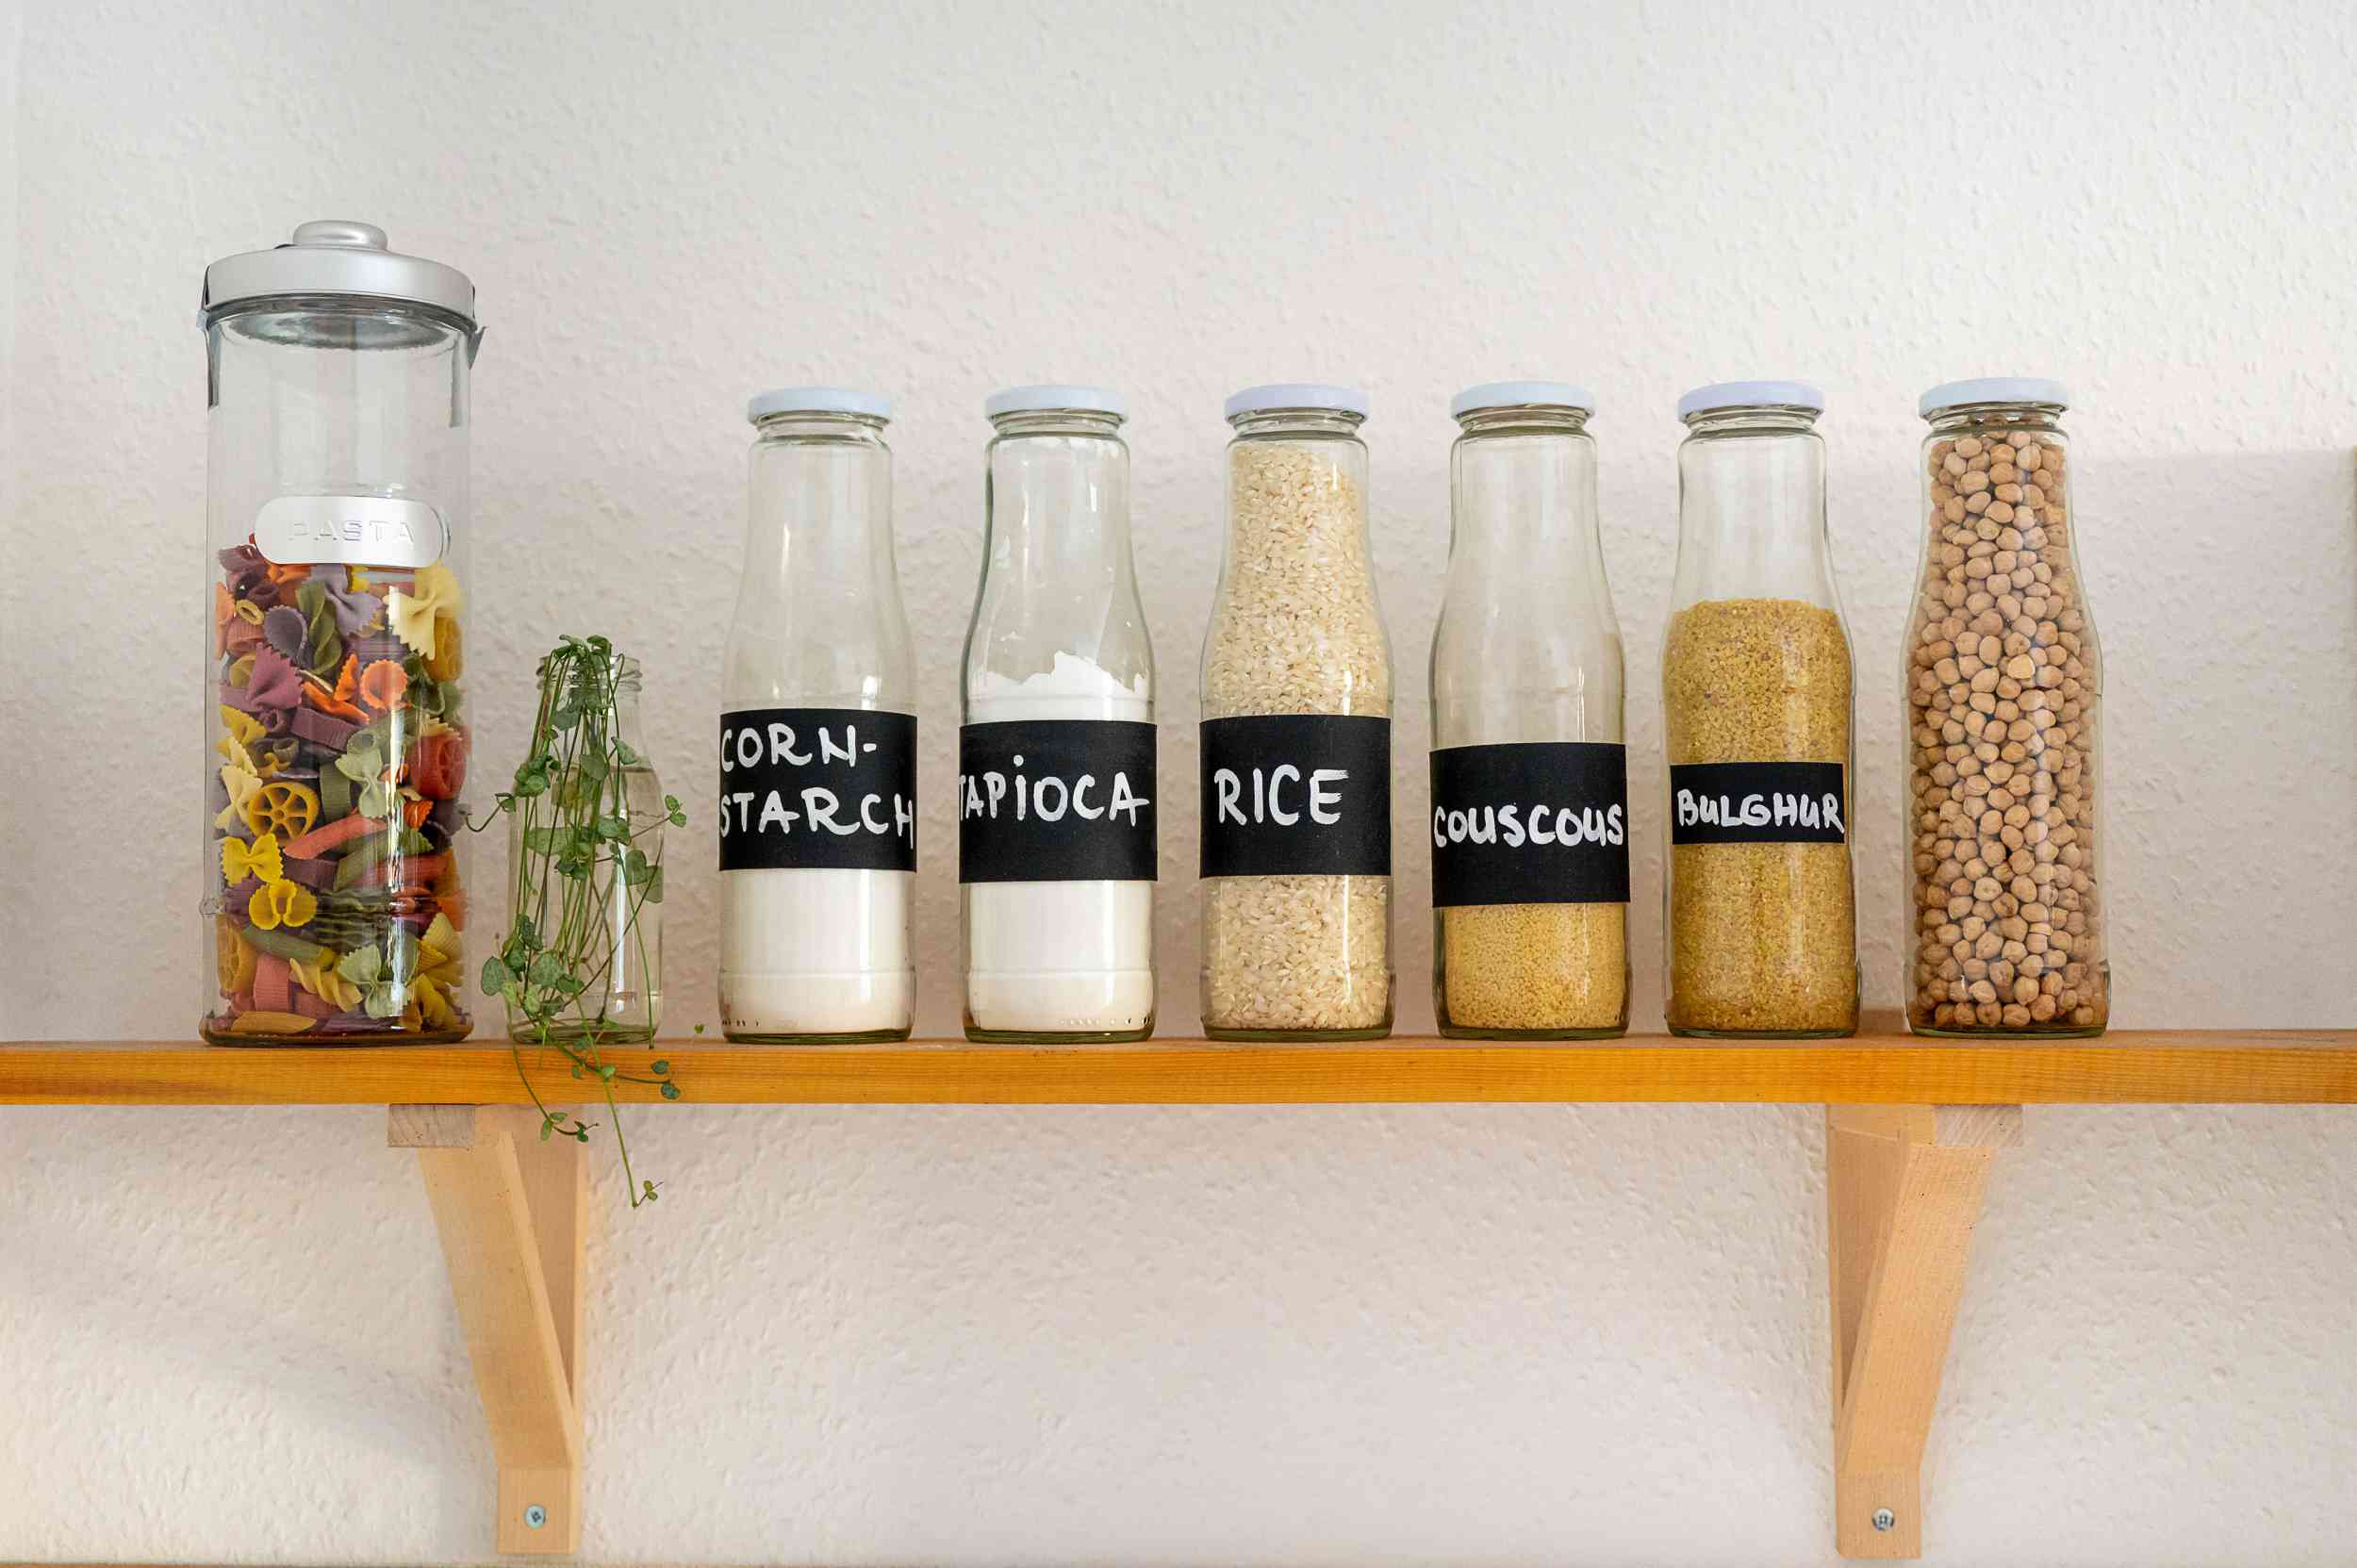 Tightly sealed glass containers labeled with different food items on kitchen shelf